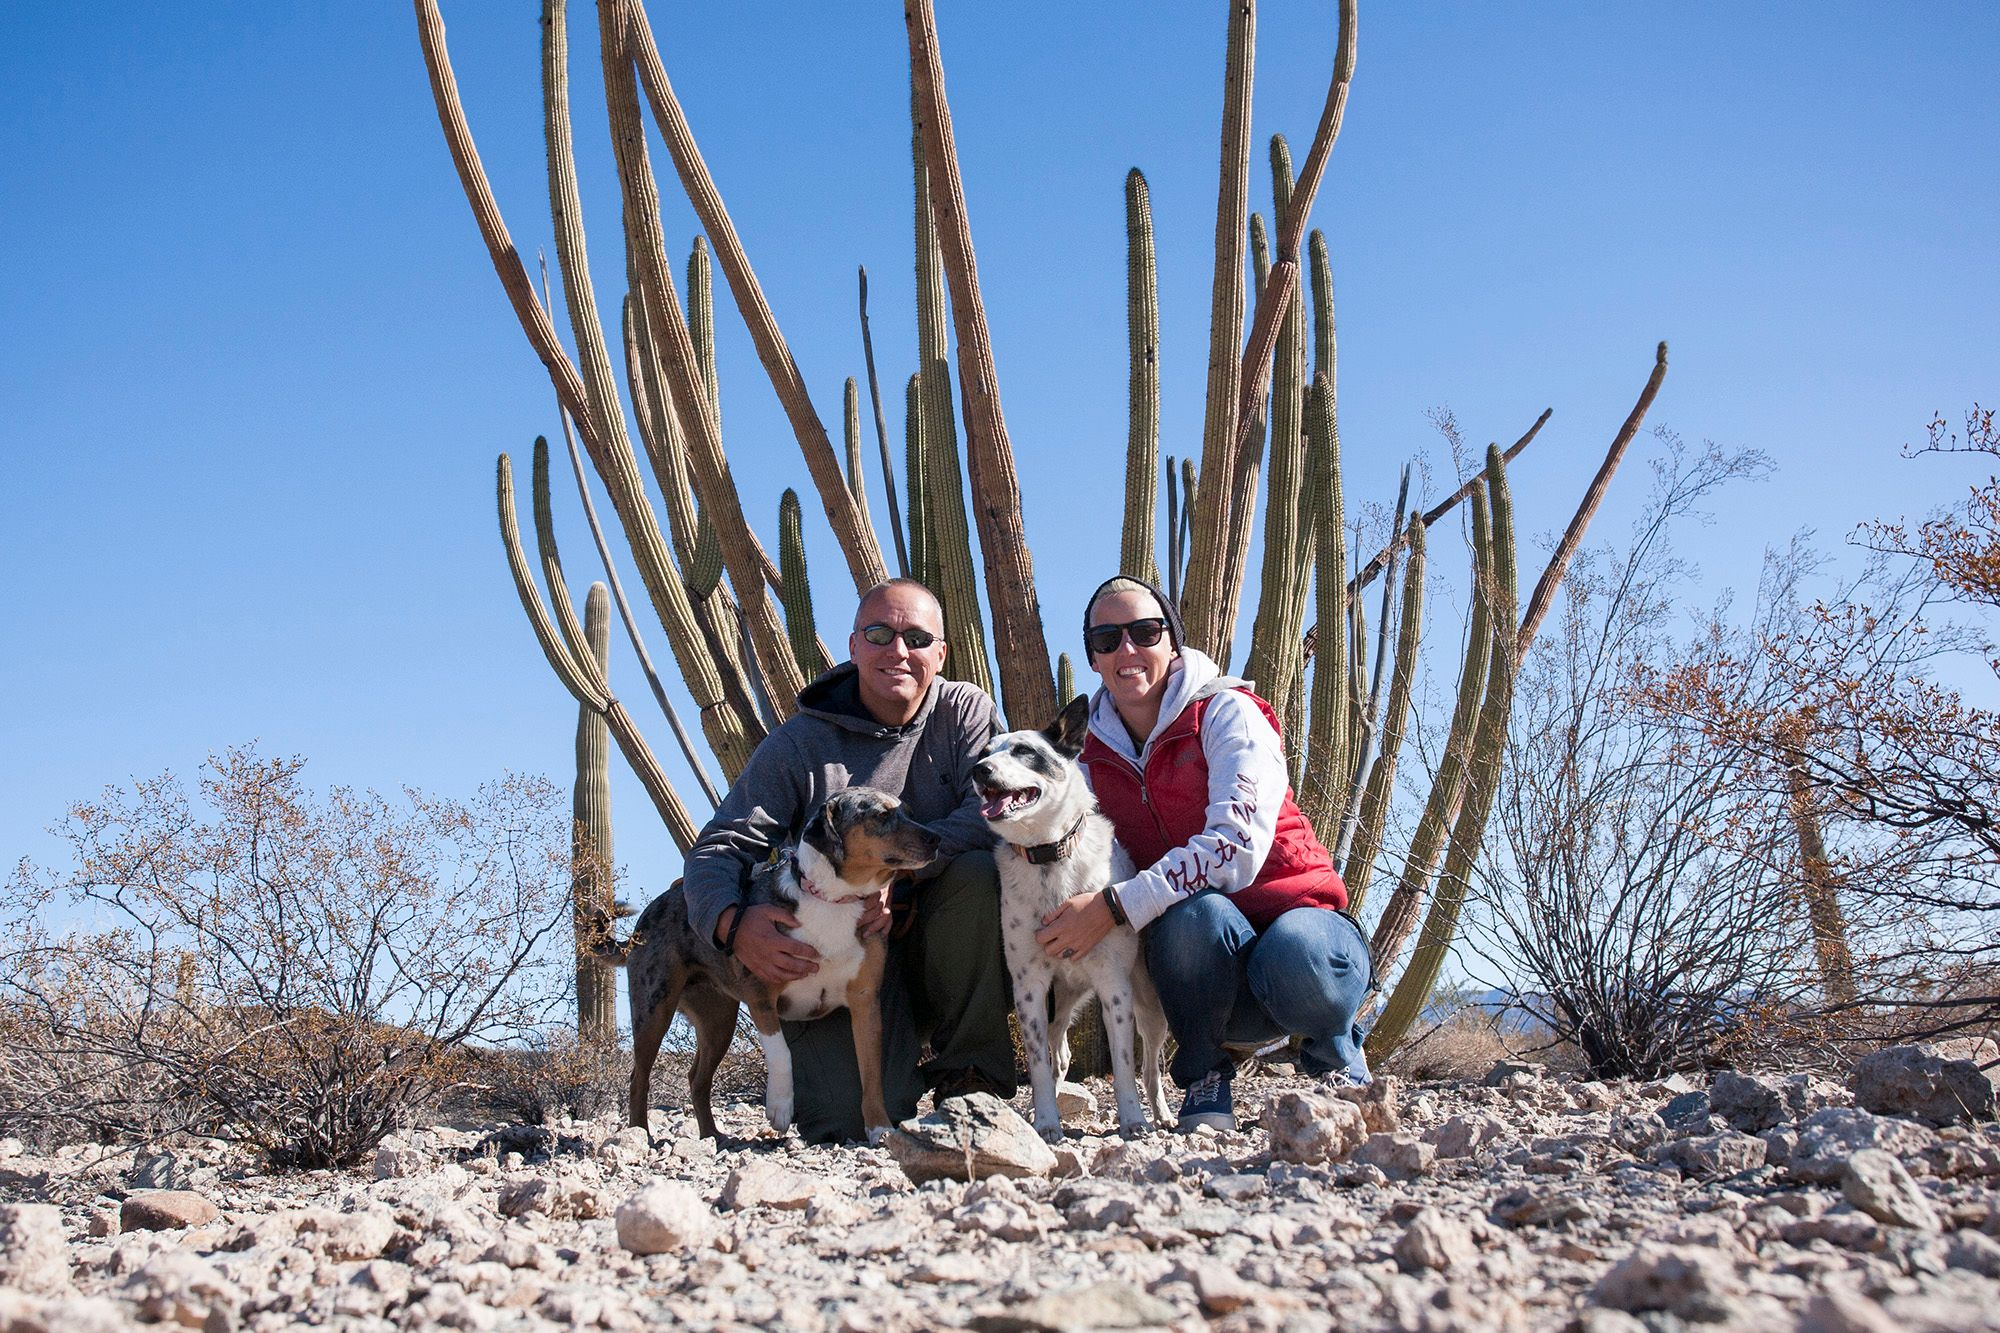 Organ Pipe Cactus National Monument:  Day Trip with Dogs